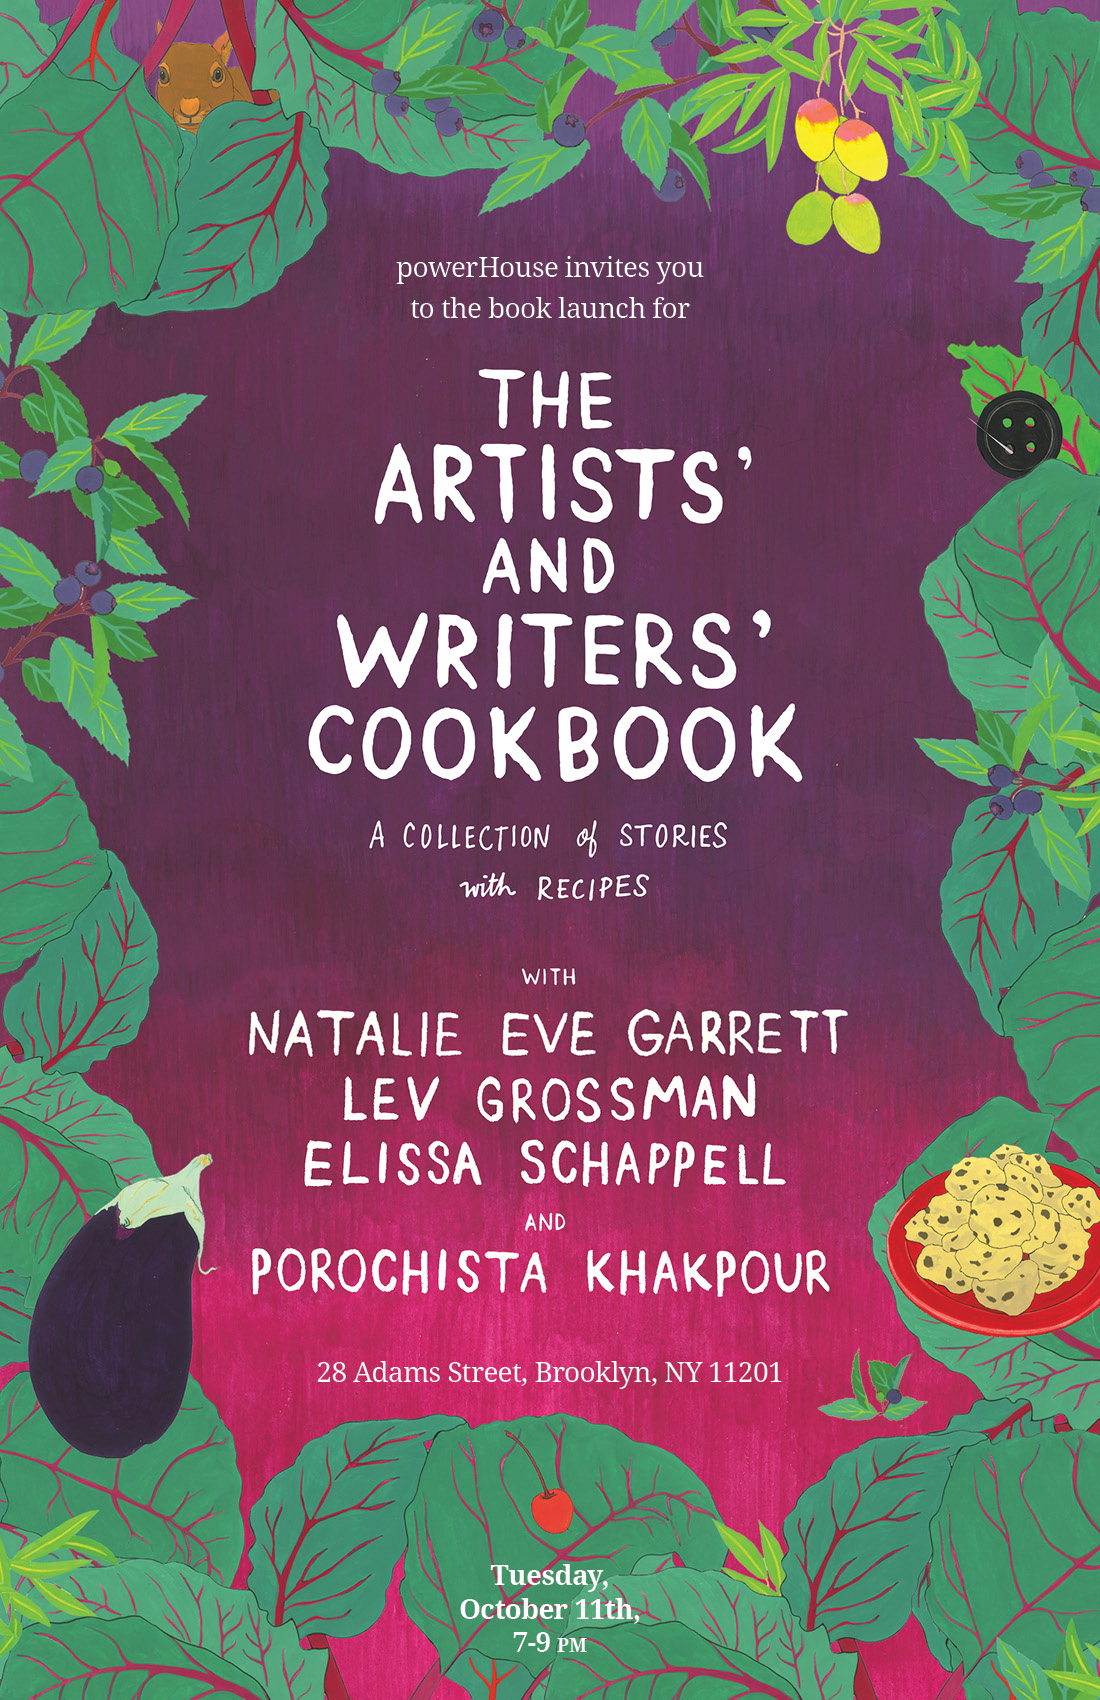 Book Launch: The Artist's and Writers' Cookbook edited by Natalie Eve Garrett with contributors Lev Grossman and Elissa Schappell, moderated by Porochista Khakpour